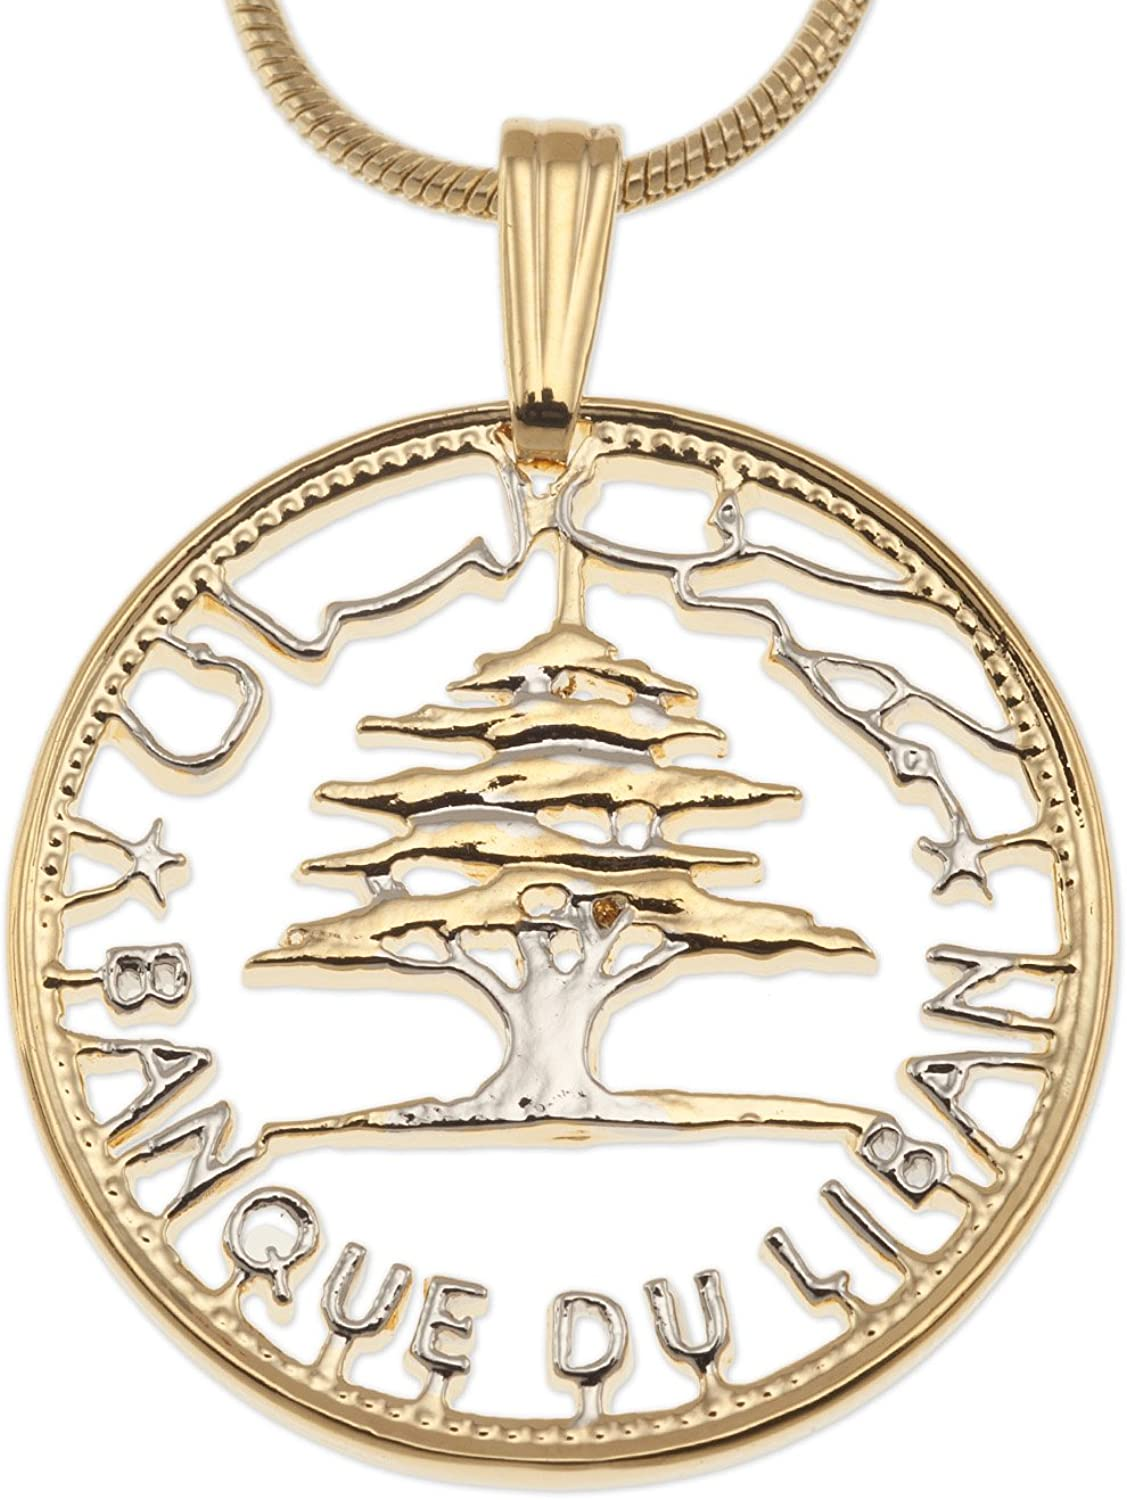 The Difference World Sales for sale Coin Jewelry Cedar Pendant Tree Popular shop is the lowest price challenge of Lebanon